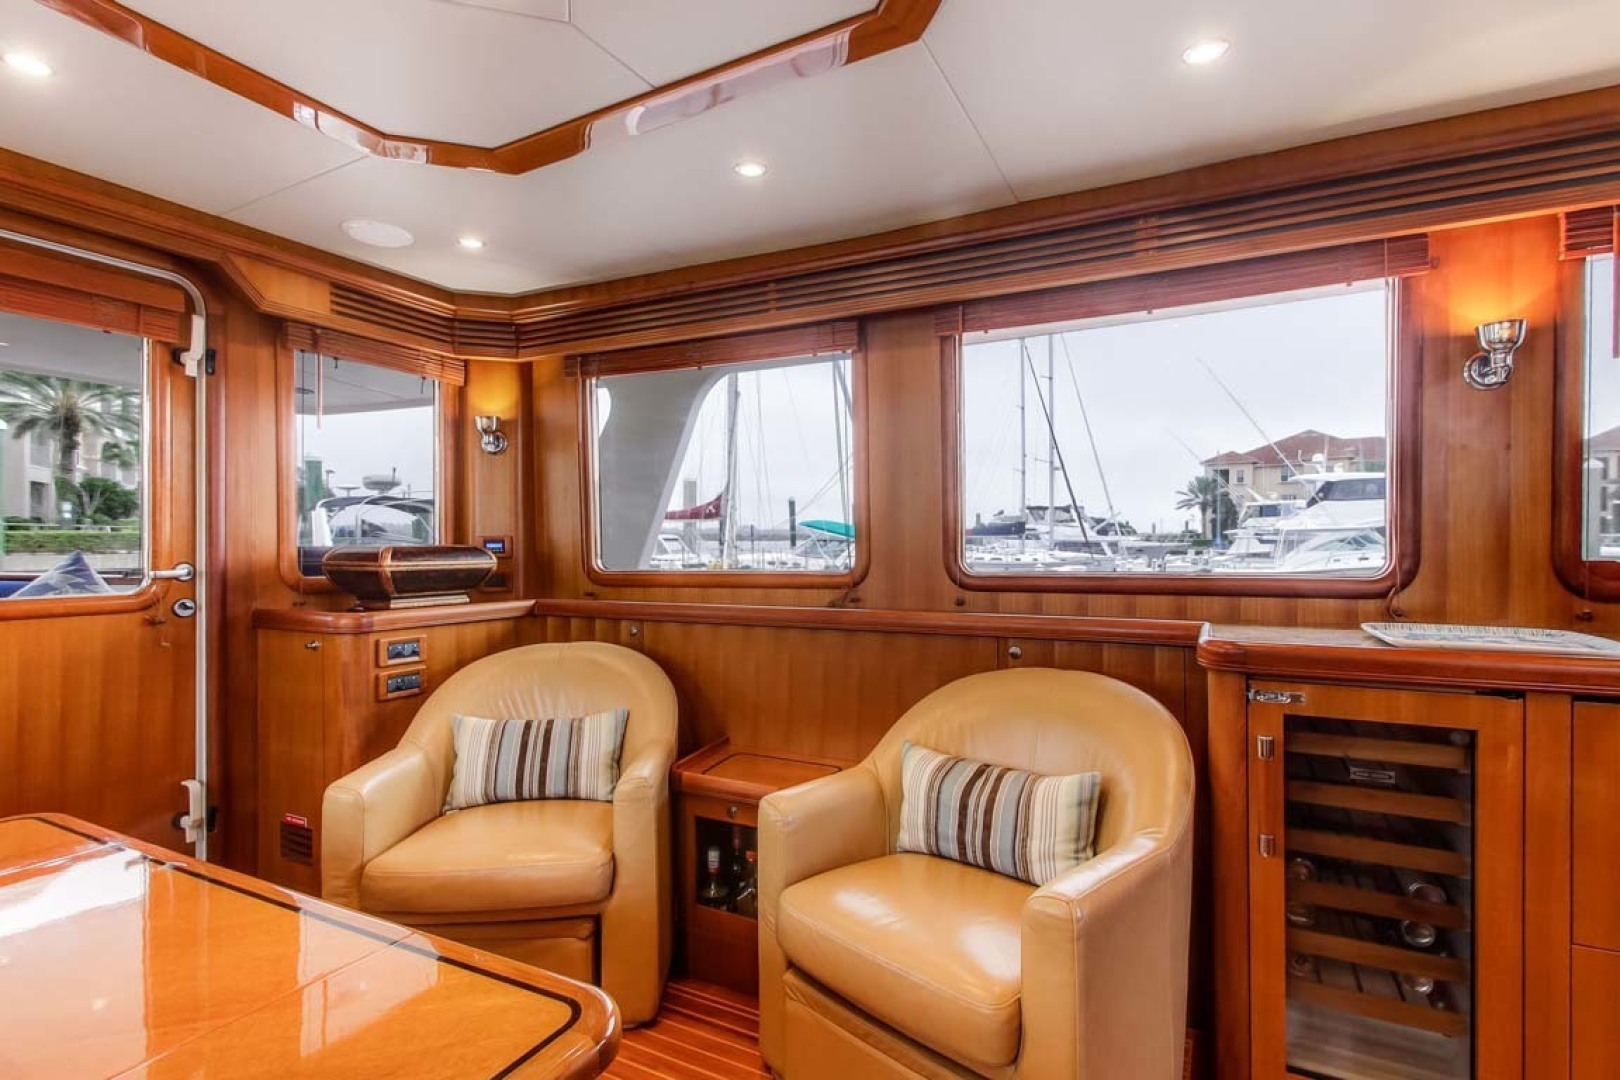 Selene-60 Ocean Trawler 2010-Gypsy Magic Jacksonville-Florida-United States-Salon-1346731 | Thumbnail